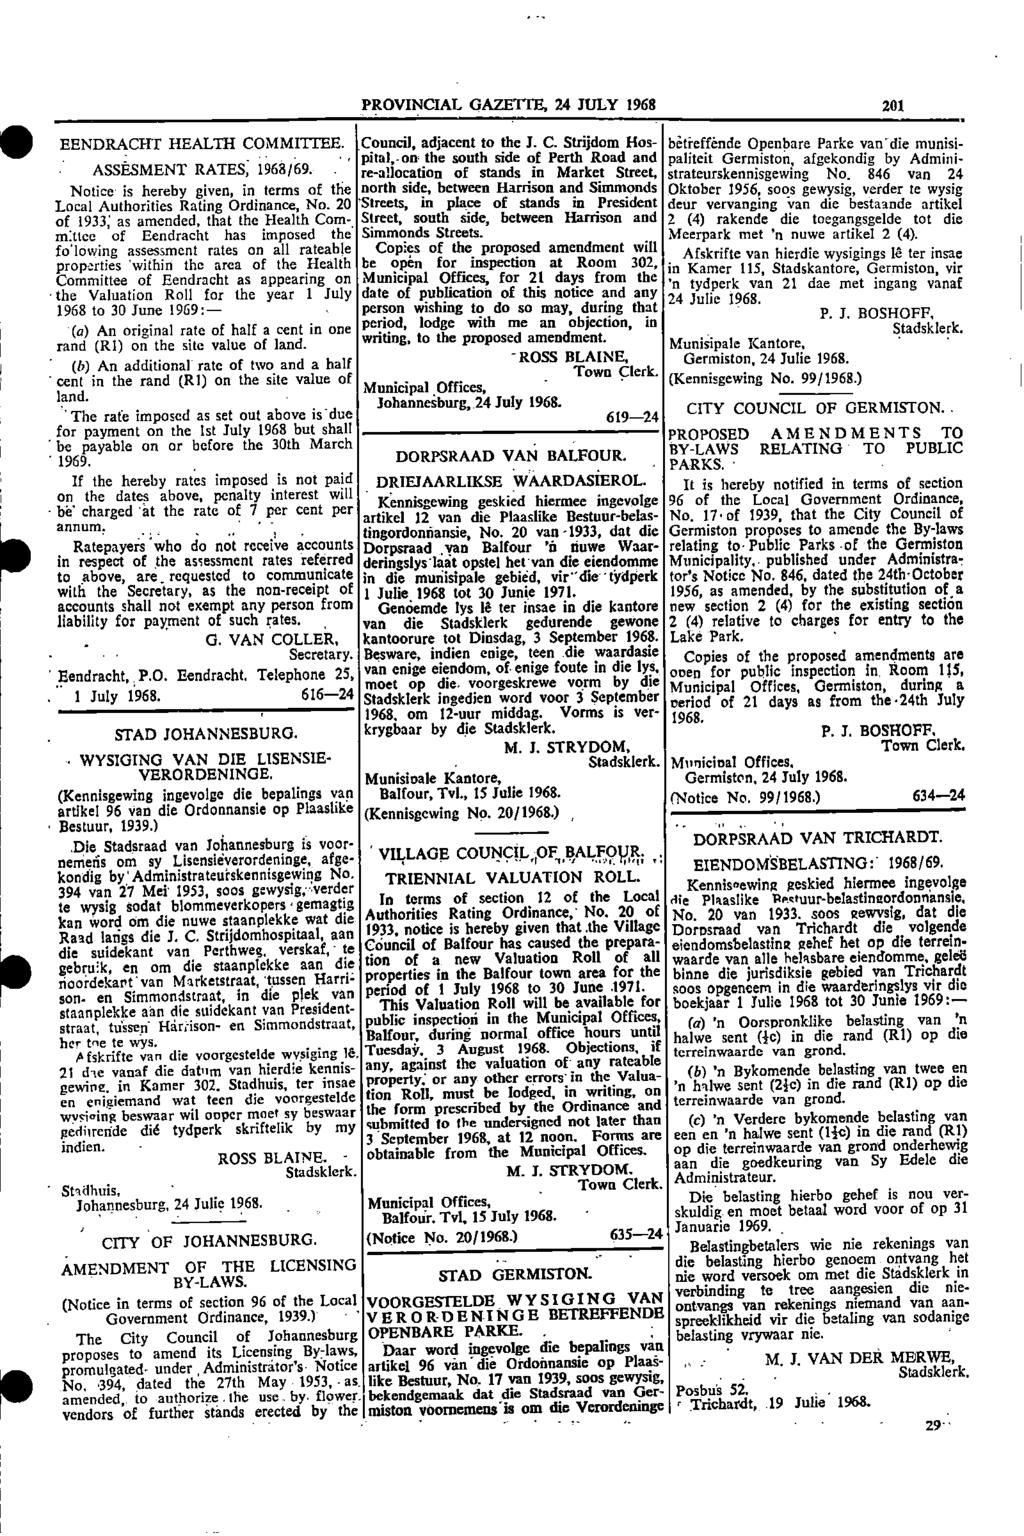 I I 1 PROVINCIAL GAZETTE, 24 JULY 1968 201 Council, adjacent to the J C Strijdom Hos betreffende Openbare Parke van EENDRACHT HEALTH COMMITTEE die munisipitail, on the south side of Perth Road and